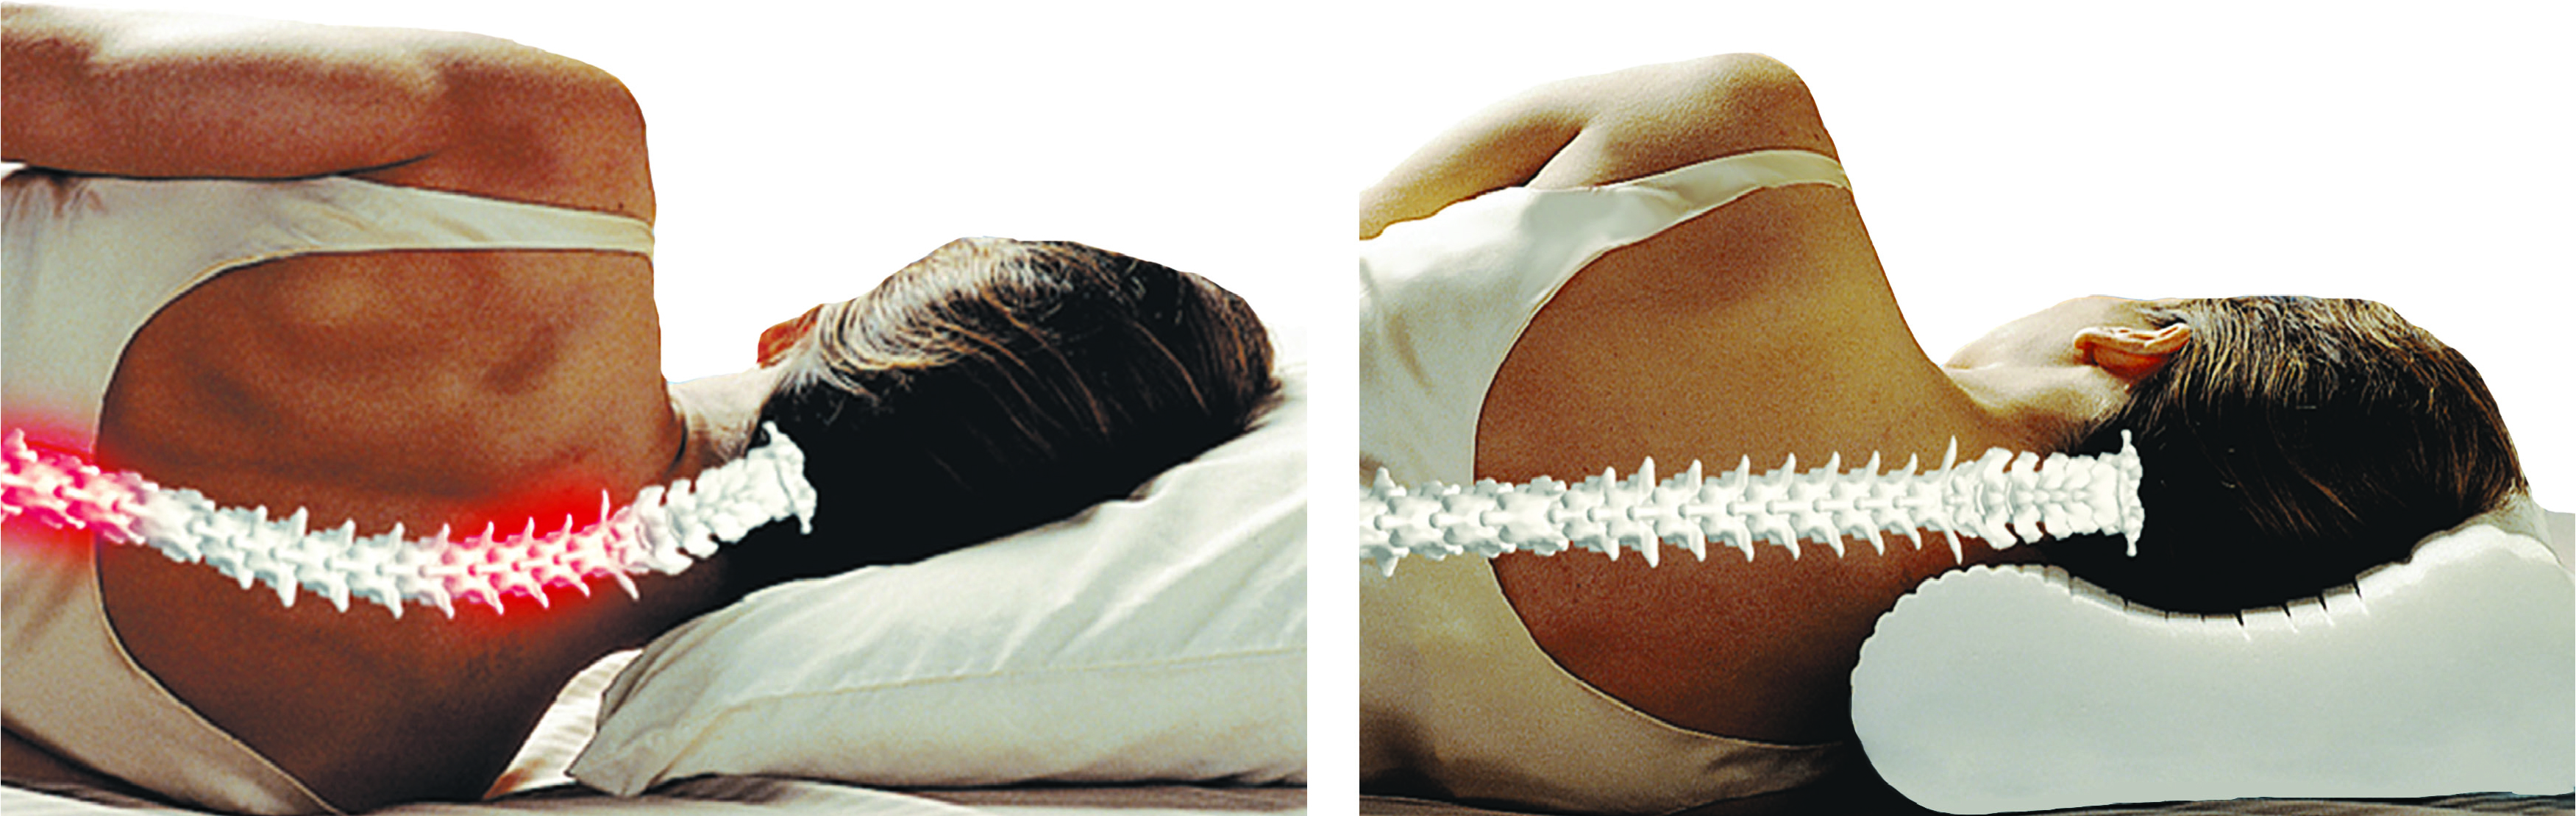 Cervical_Pillow-Before_After